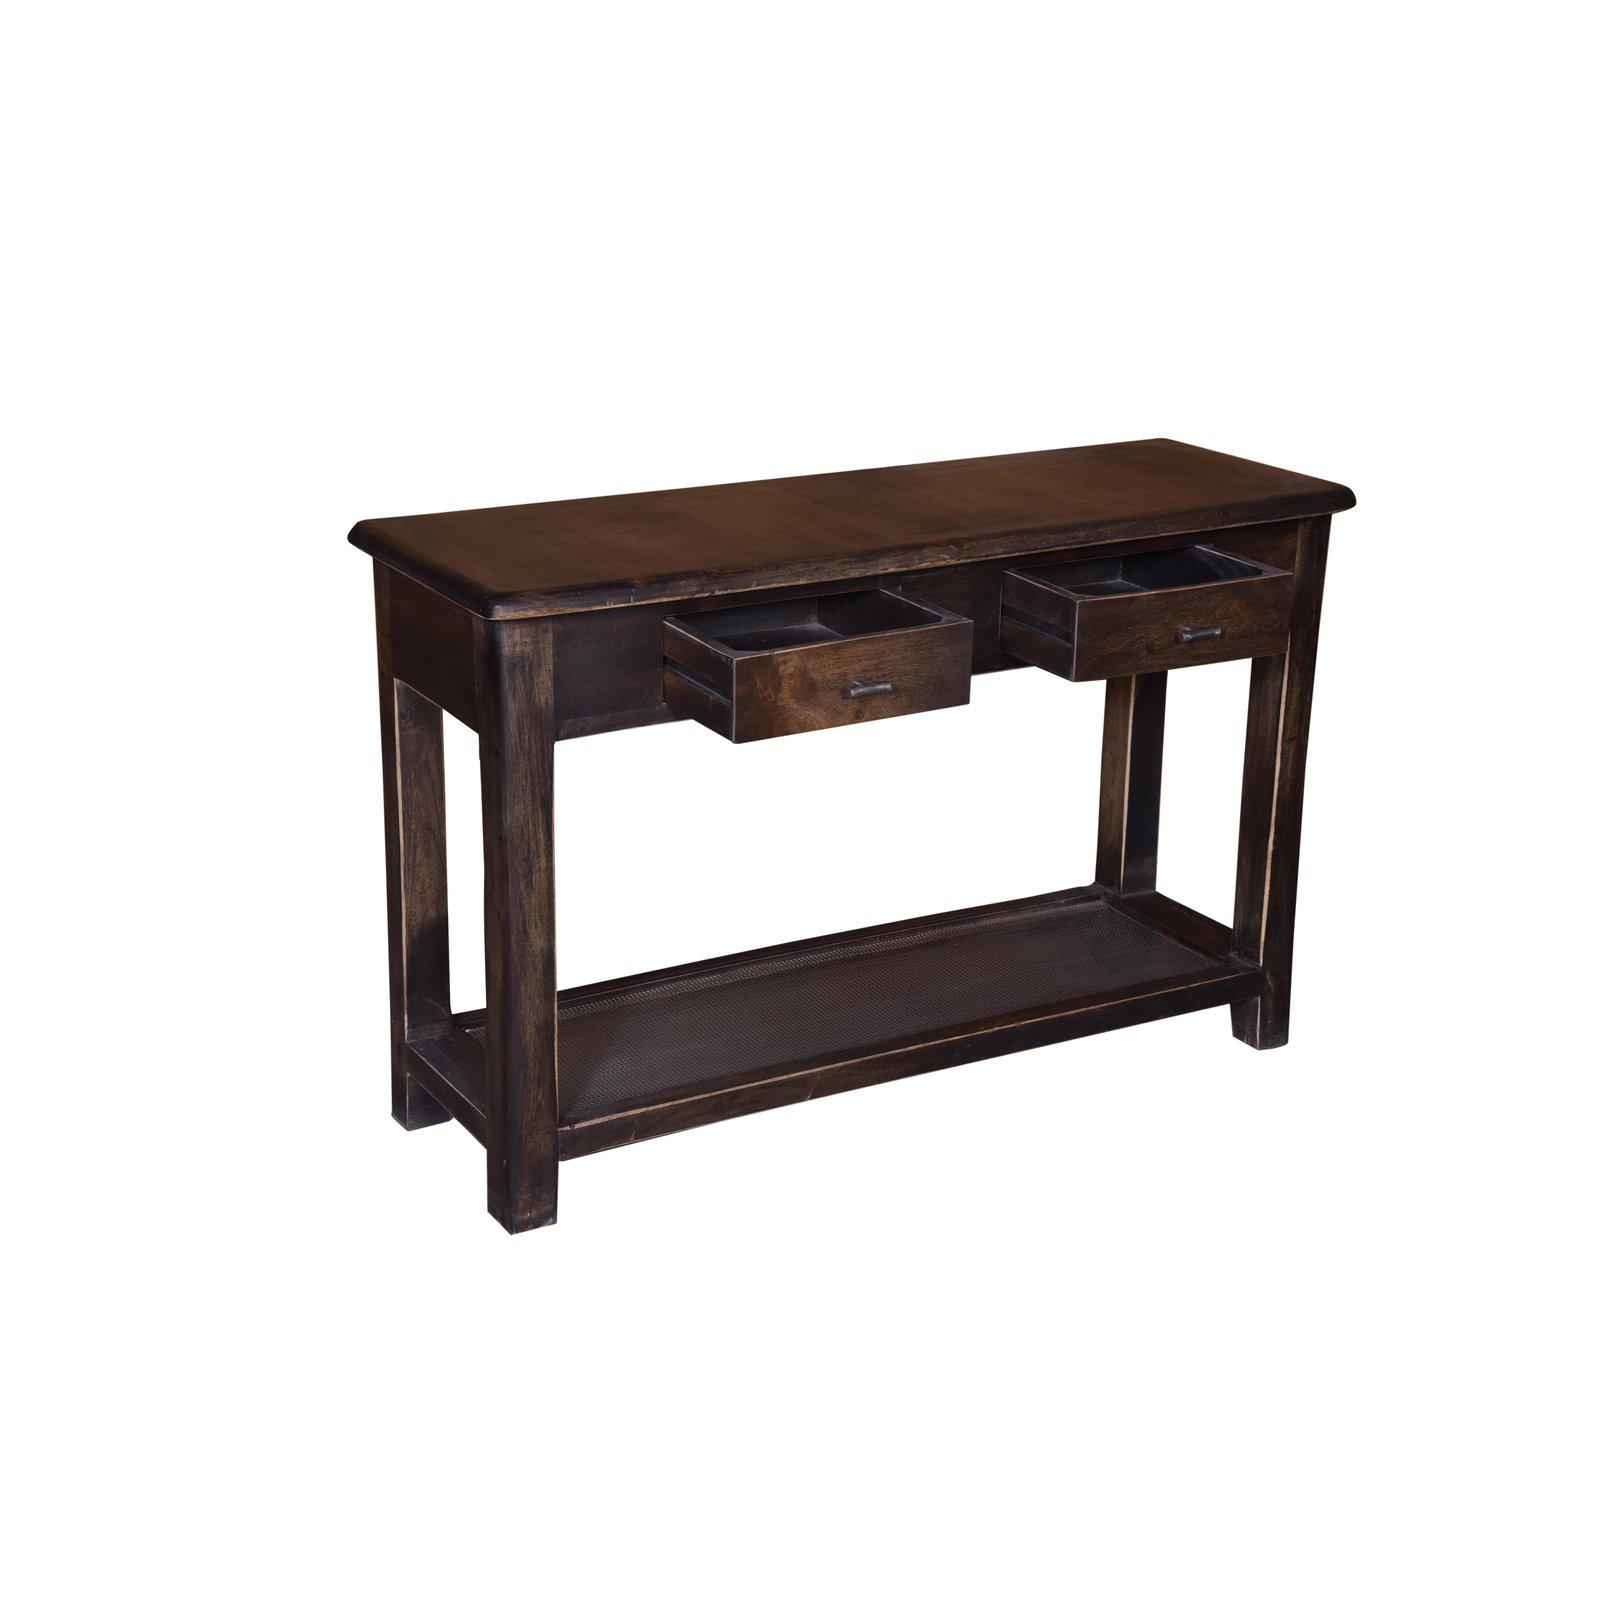 Gain Surface Space With Warm Rusting Styling When You Add This Console Table  To Your Living